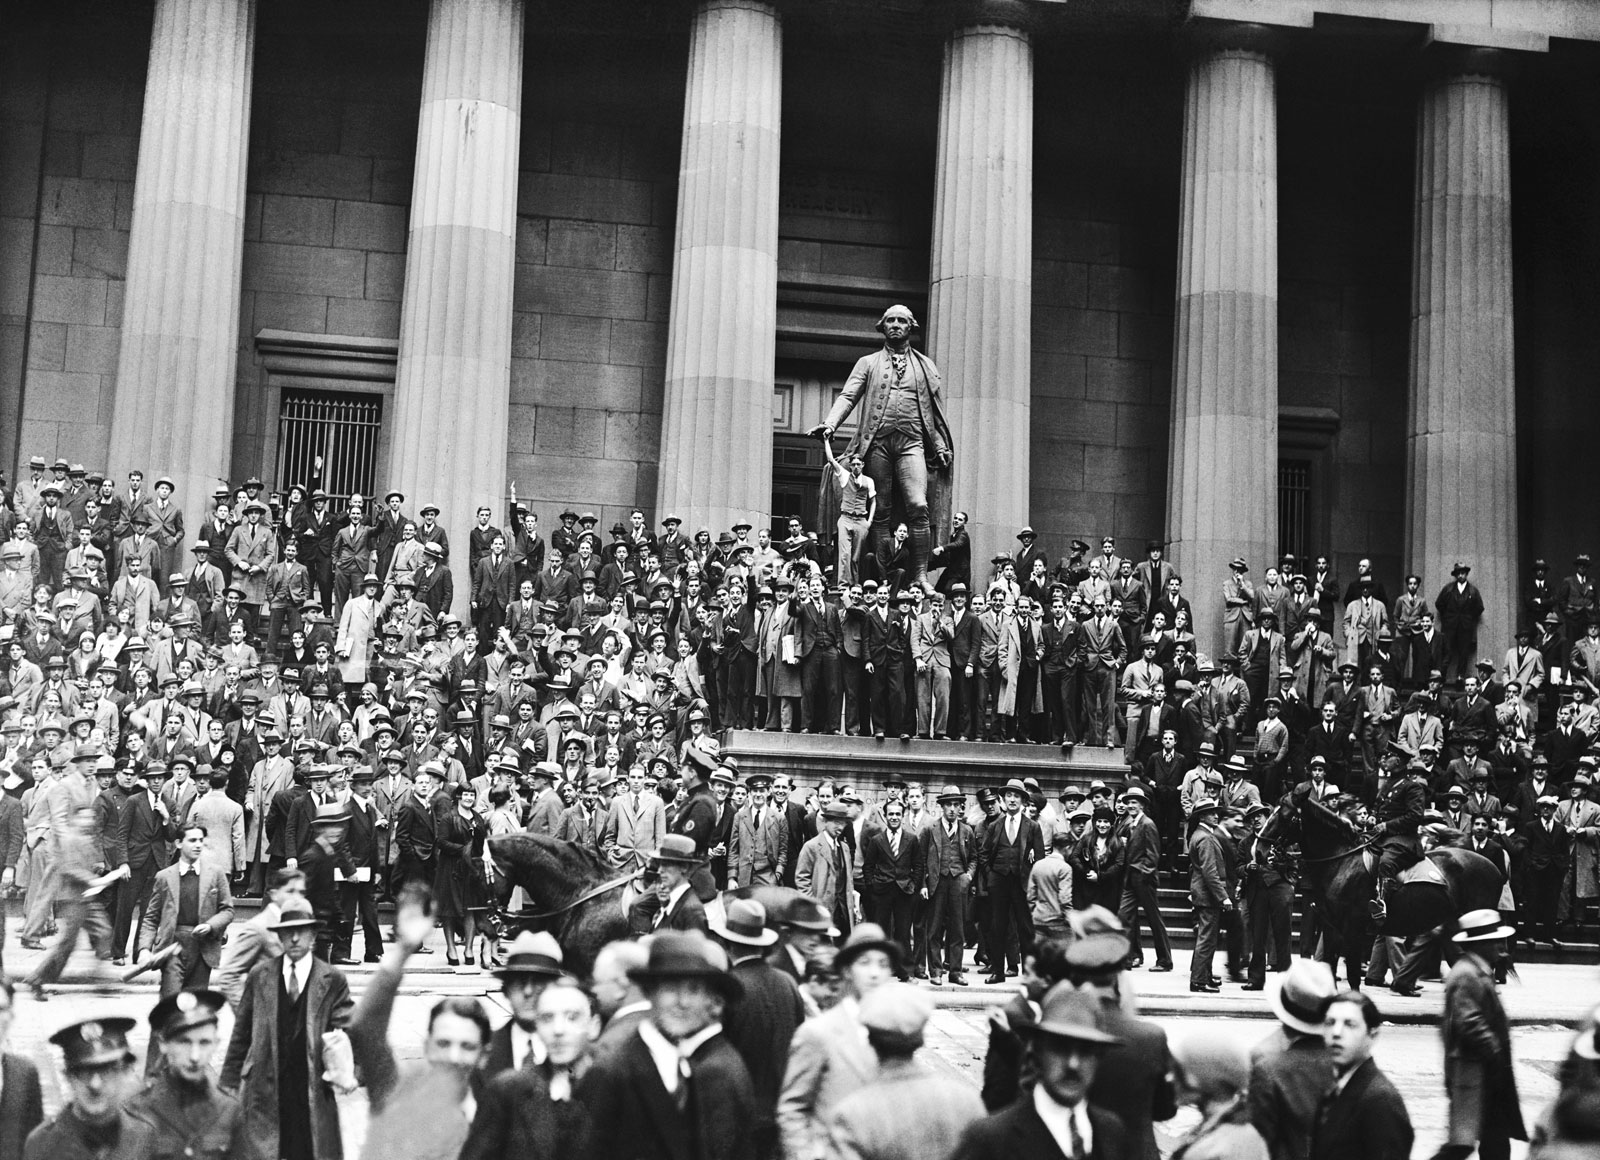 an introduction to the history of the stock market crash of 1929